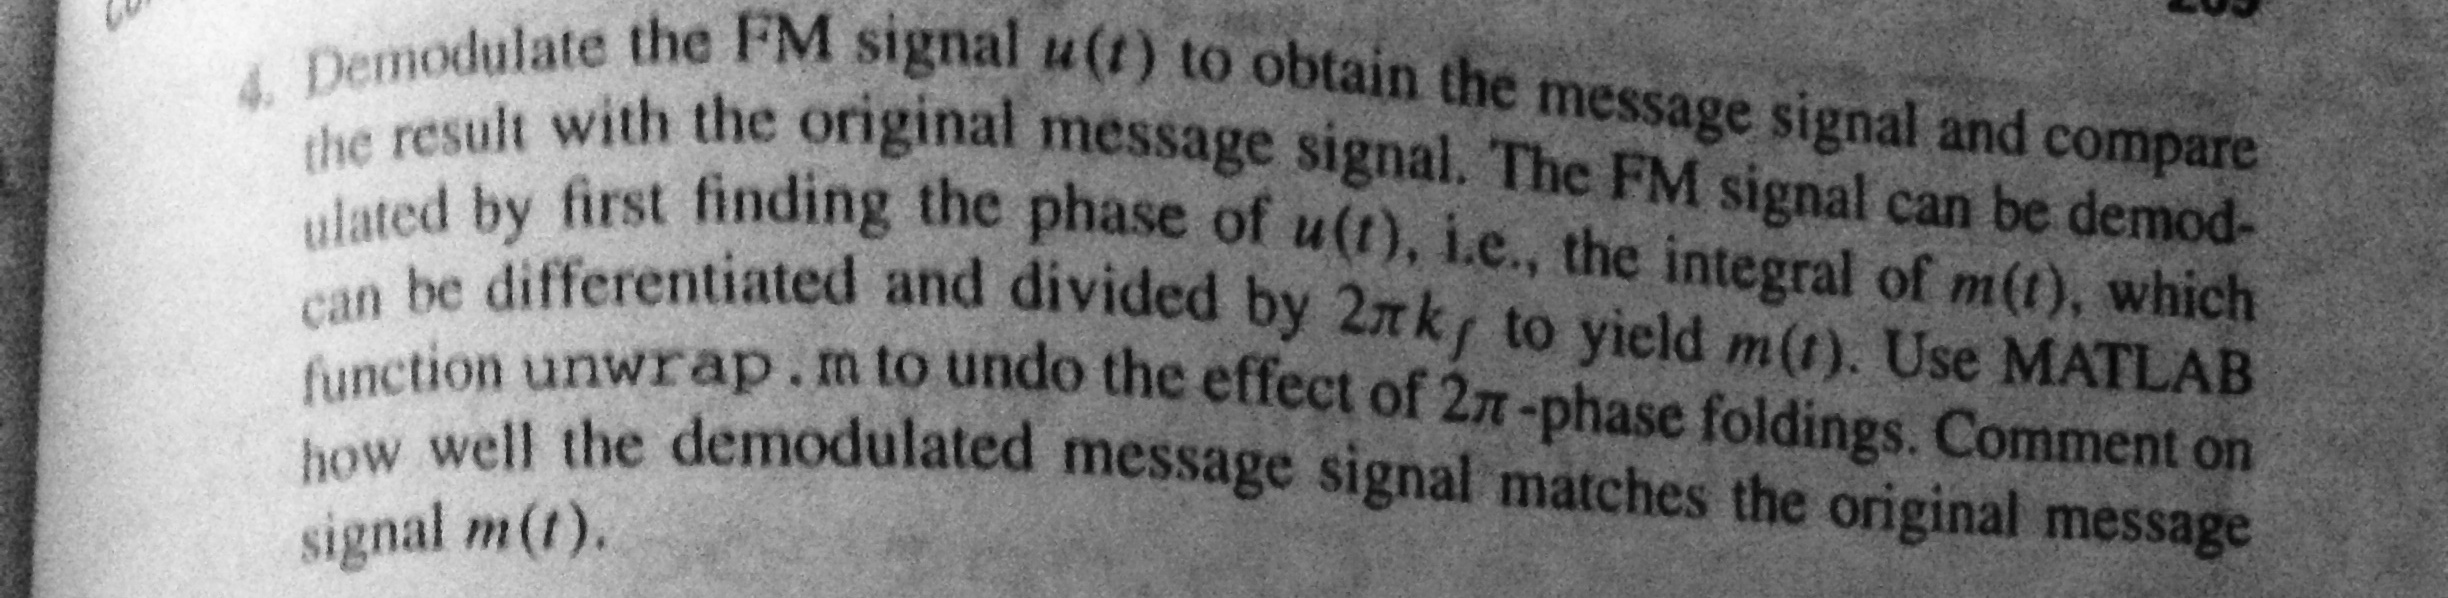 Demodulate the FM signal u (t) to obtain the messa